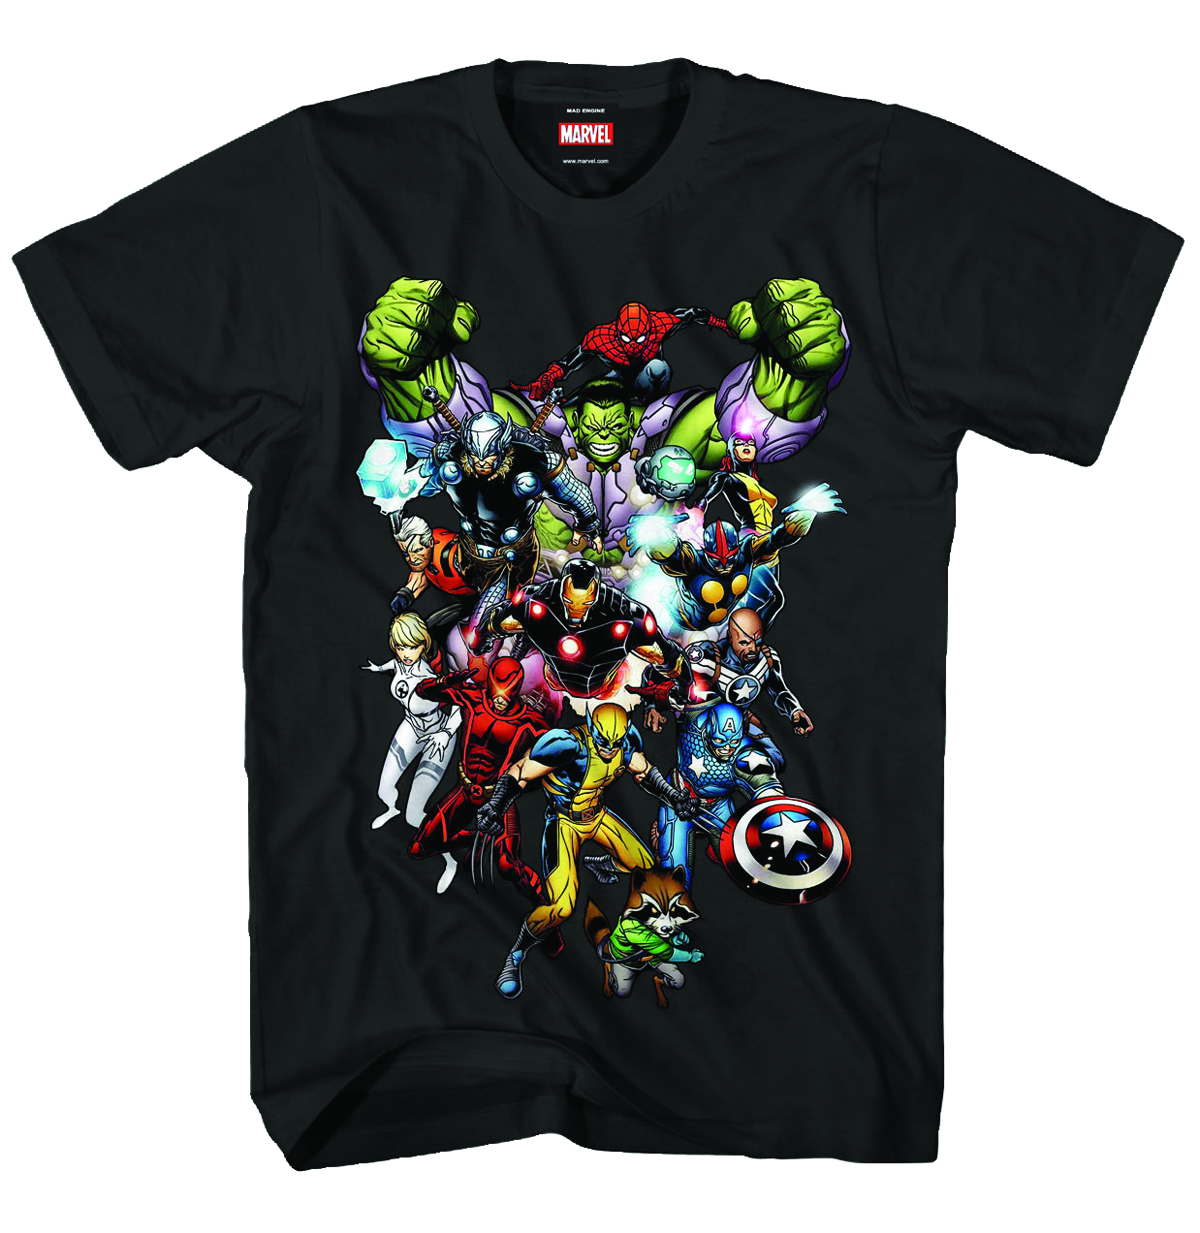 MARVEL HEROES MARVEL NOW PX BLK T/S LG